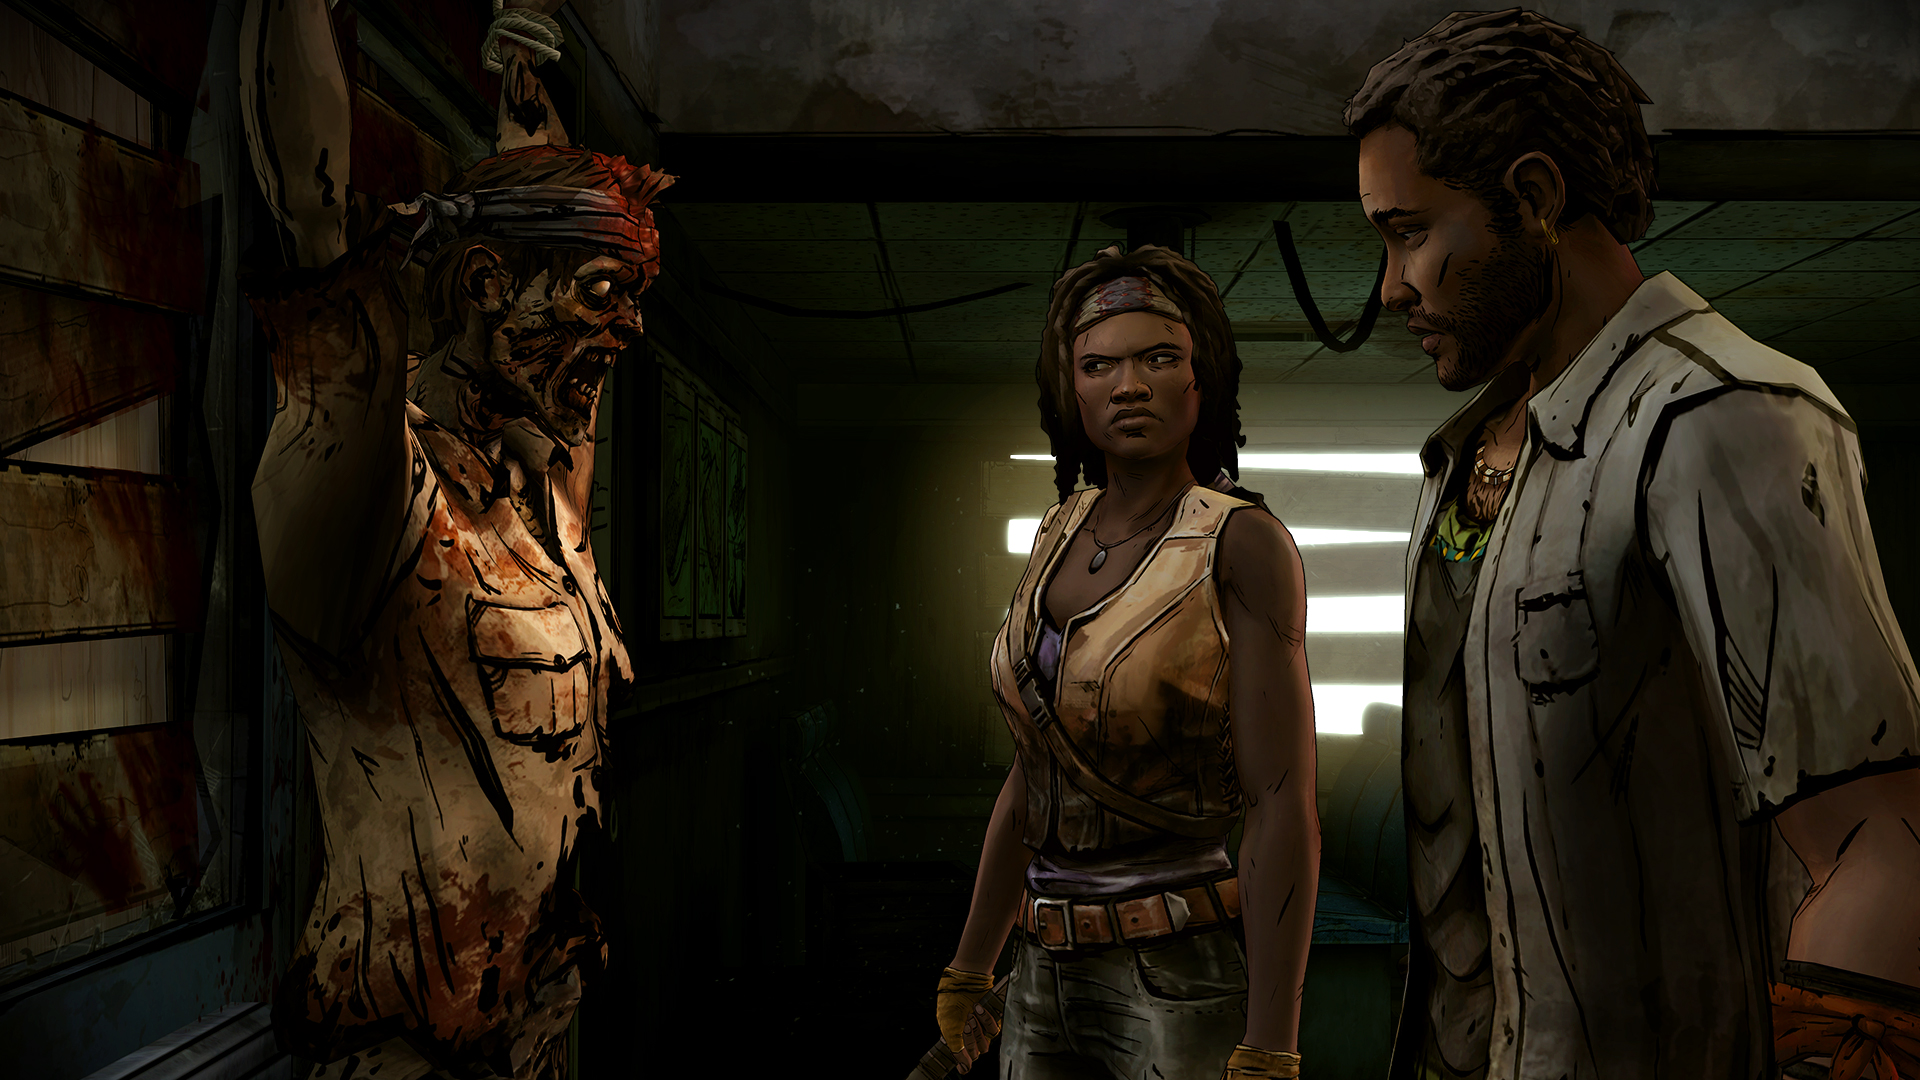 The Walking Dead: Michonne Episode 2 Hits March 29th